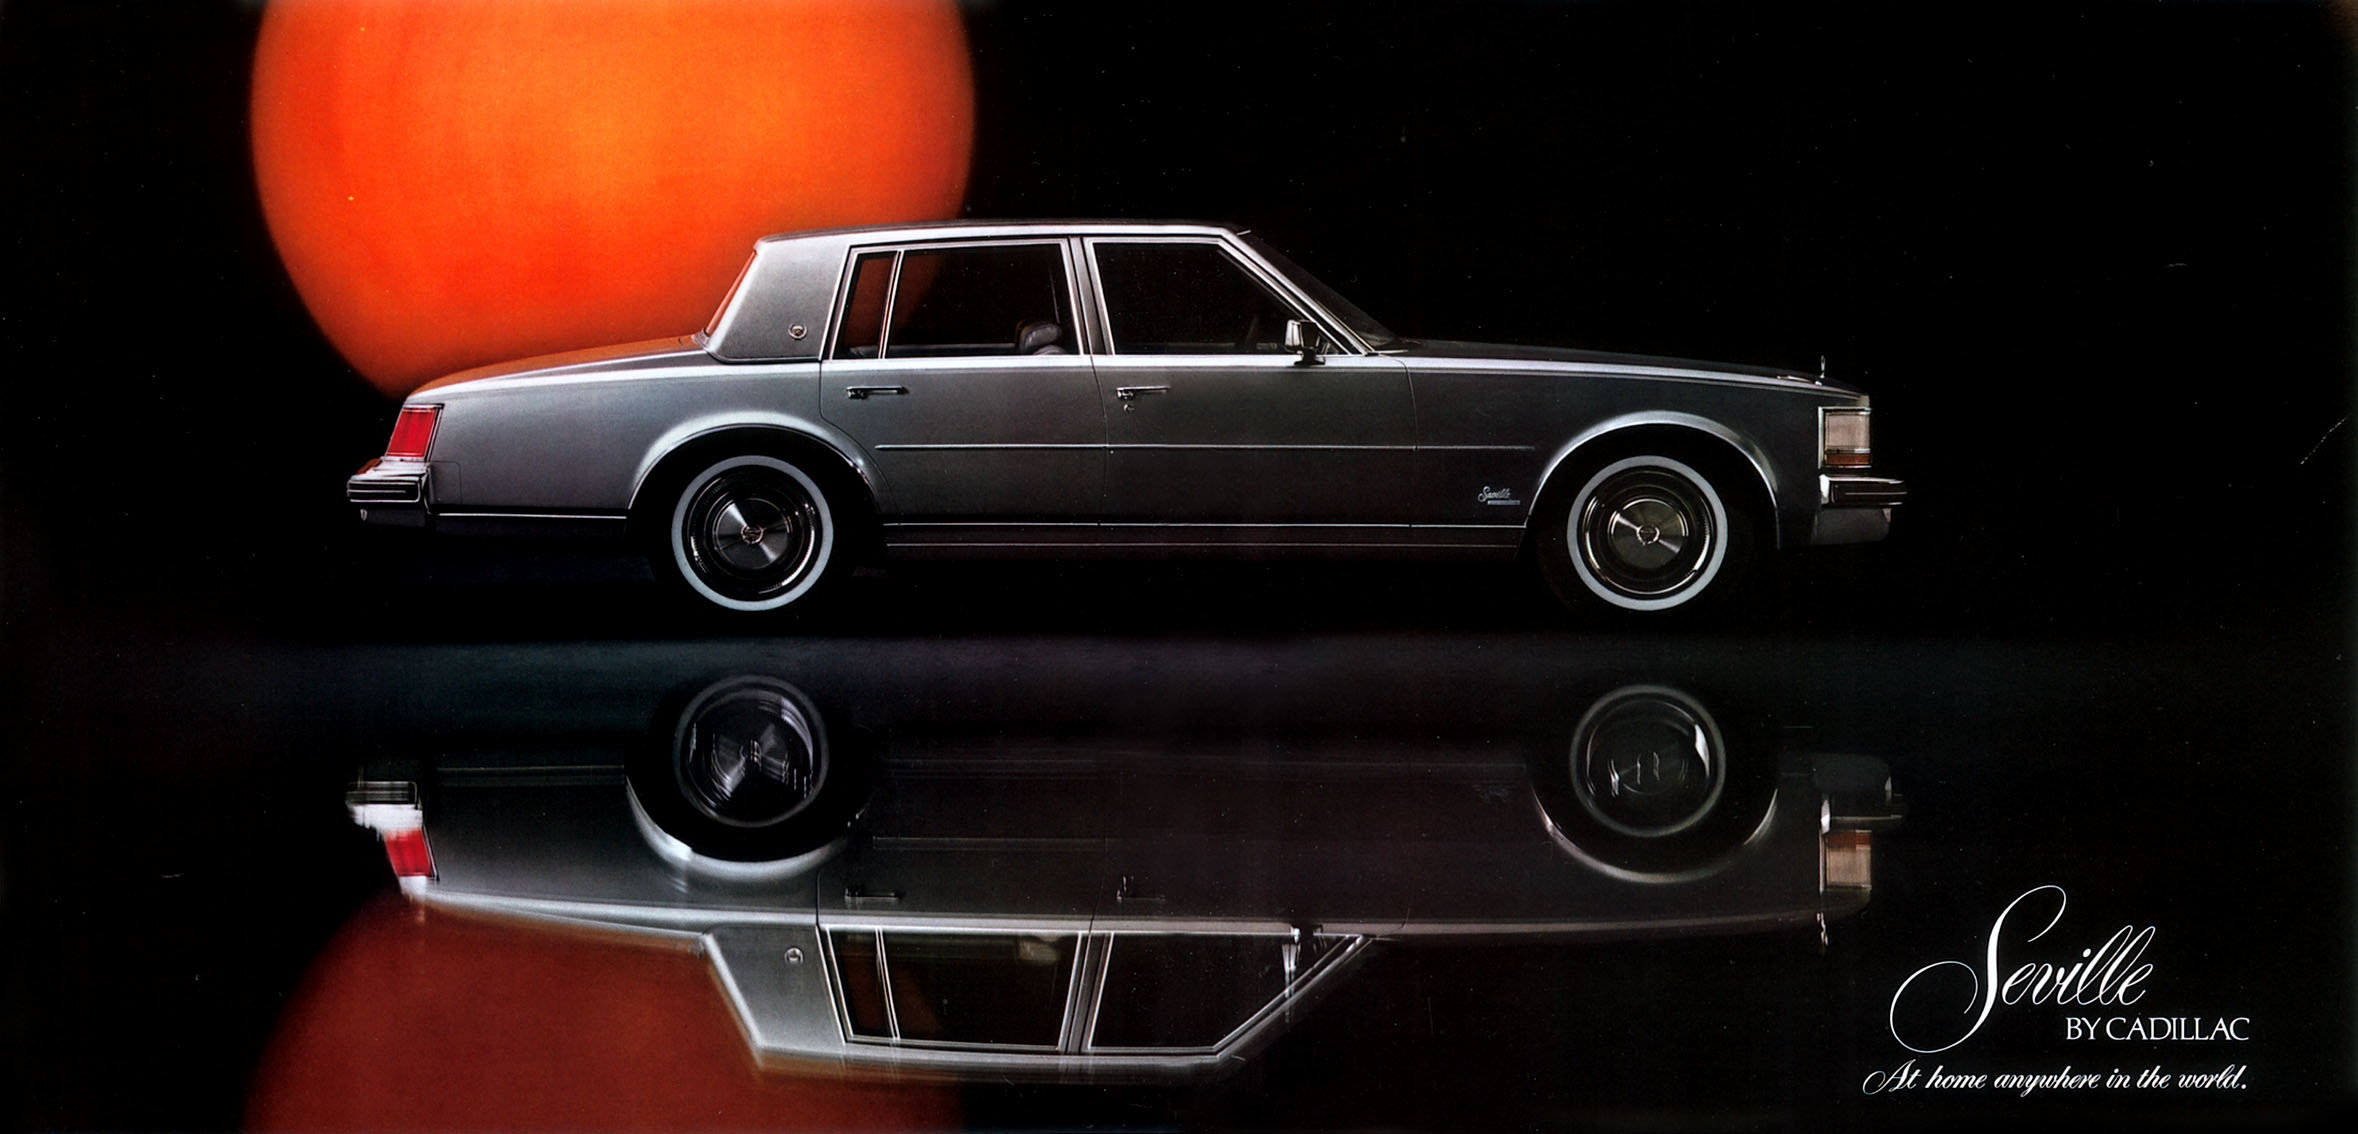 Cadillac Seville   pictures, information and specs - Auto-Database.com